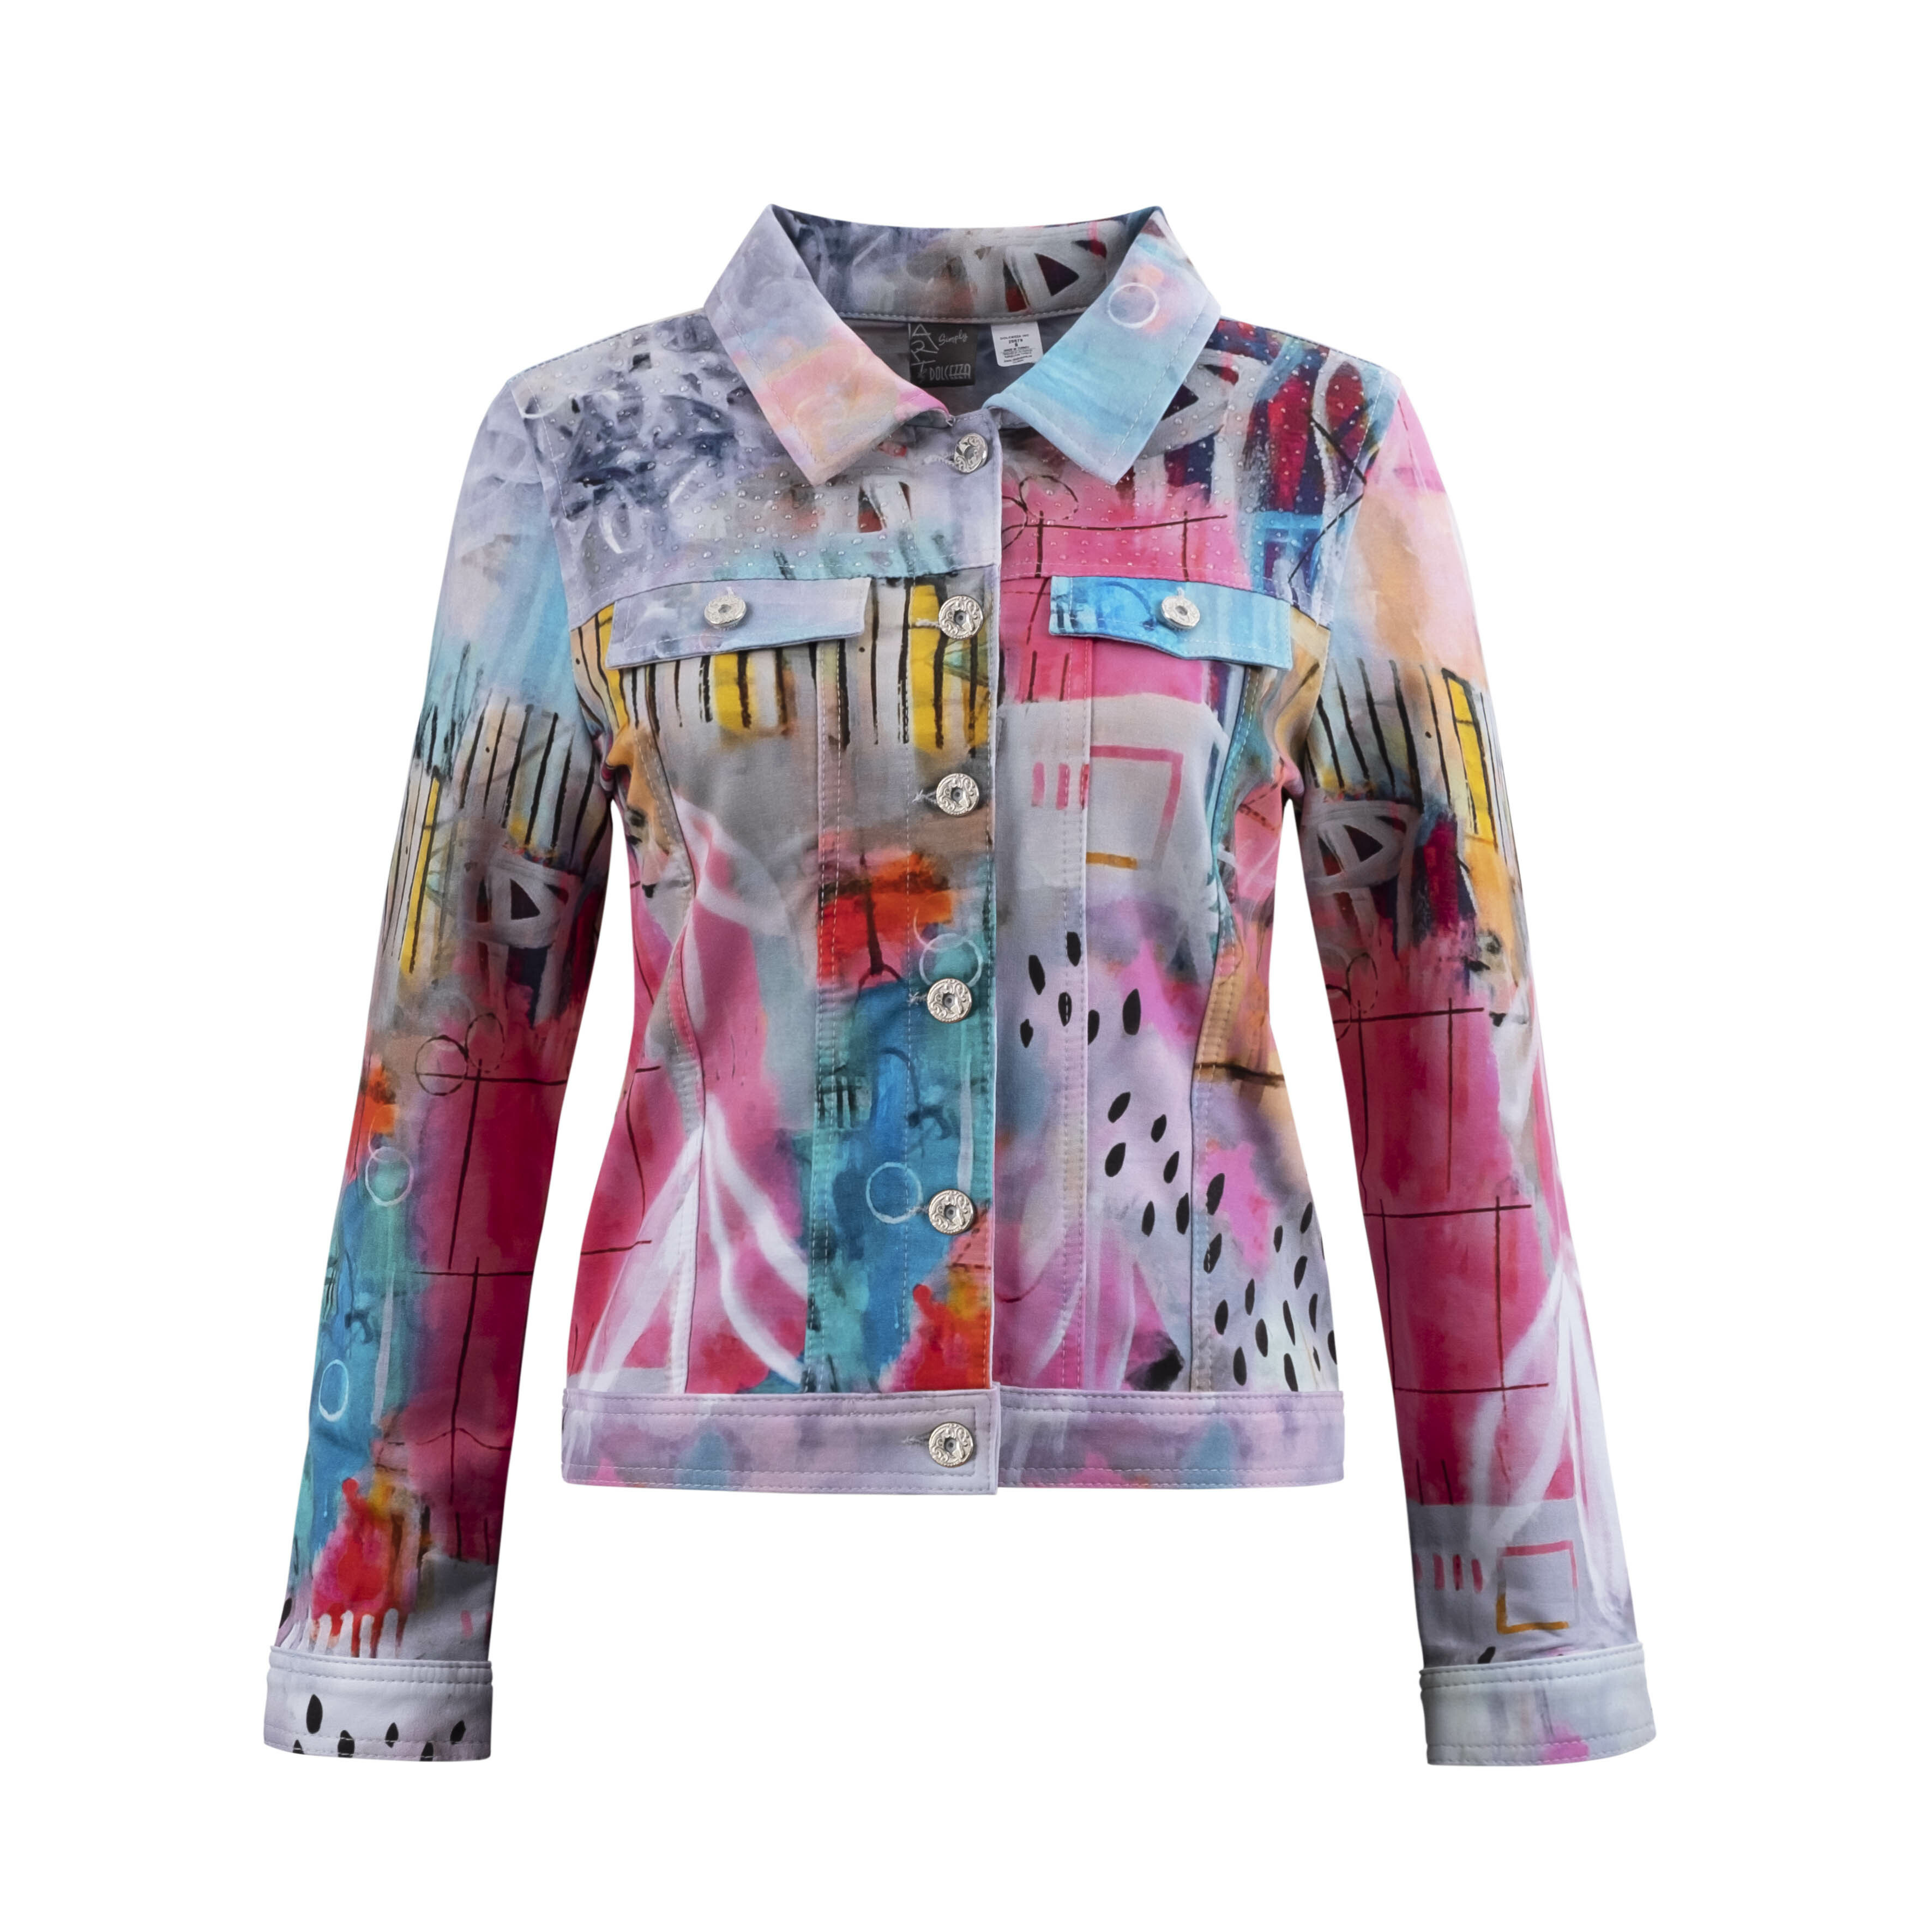 Simply Art Dolcezza: Receive The Best Things In Life Abstract Art Denim Jacket (3 Left!) DOLCEZZA_SIMPLYART_20679_N1